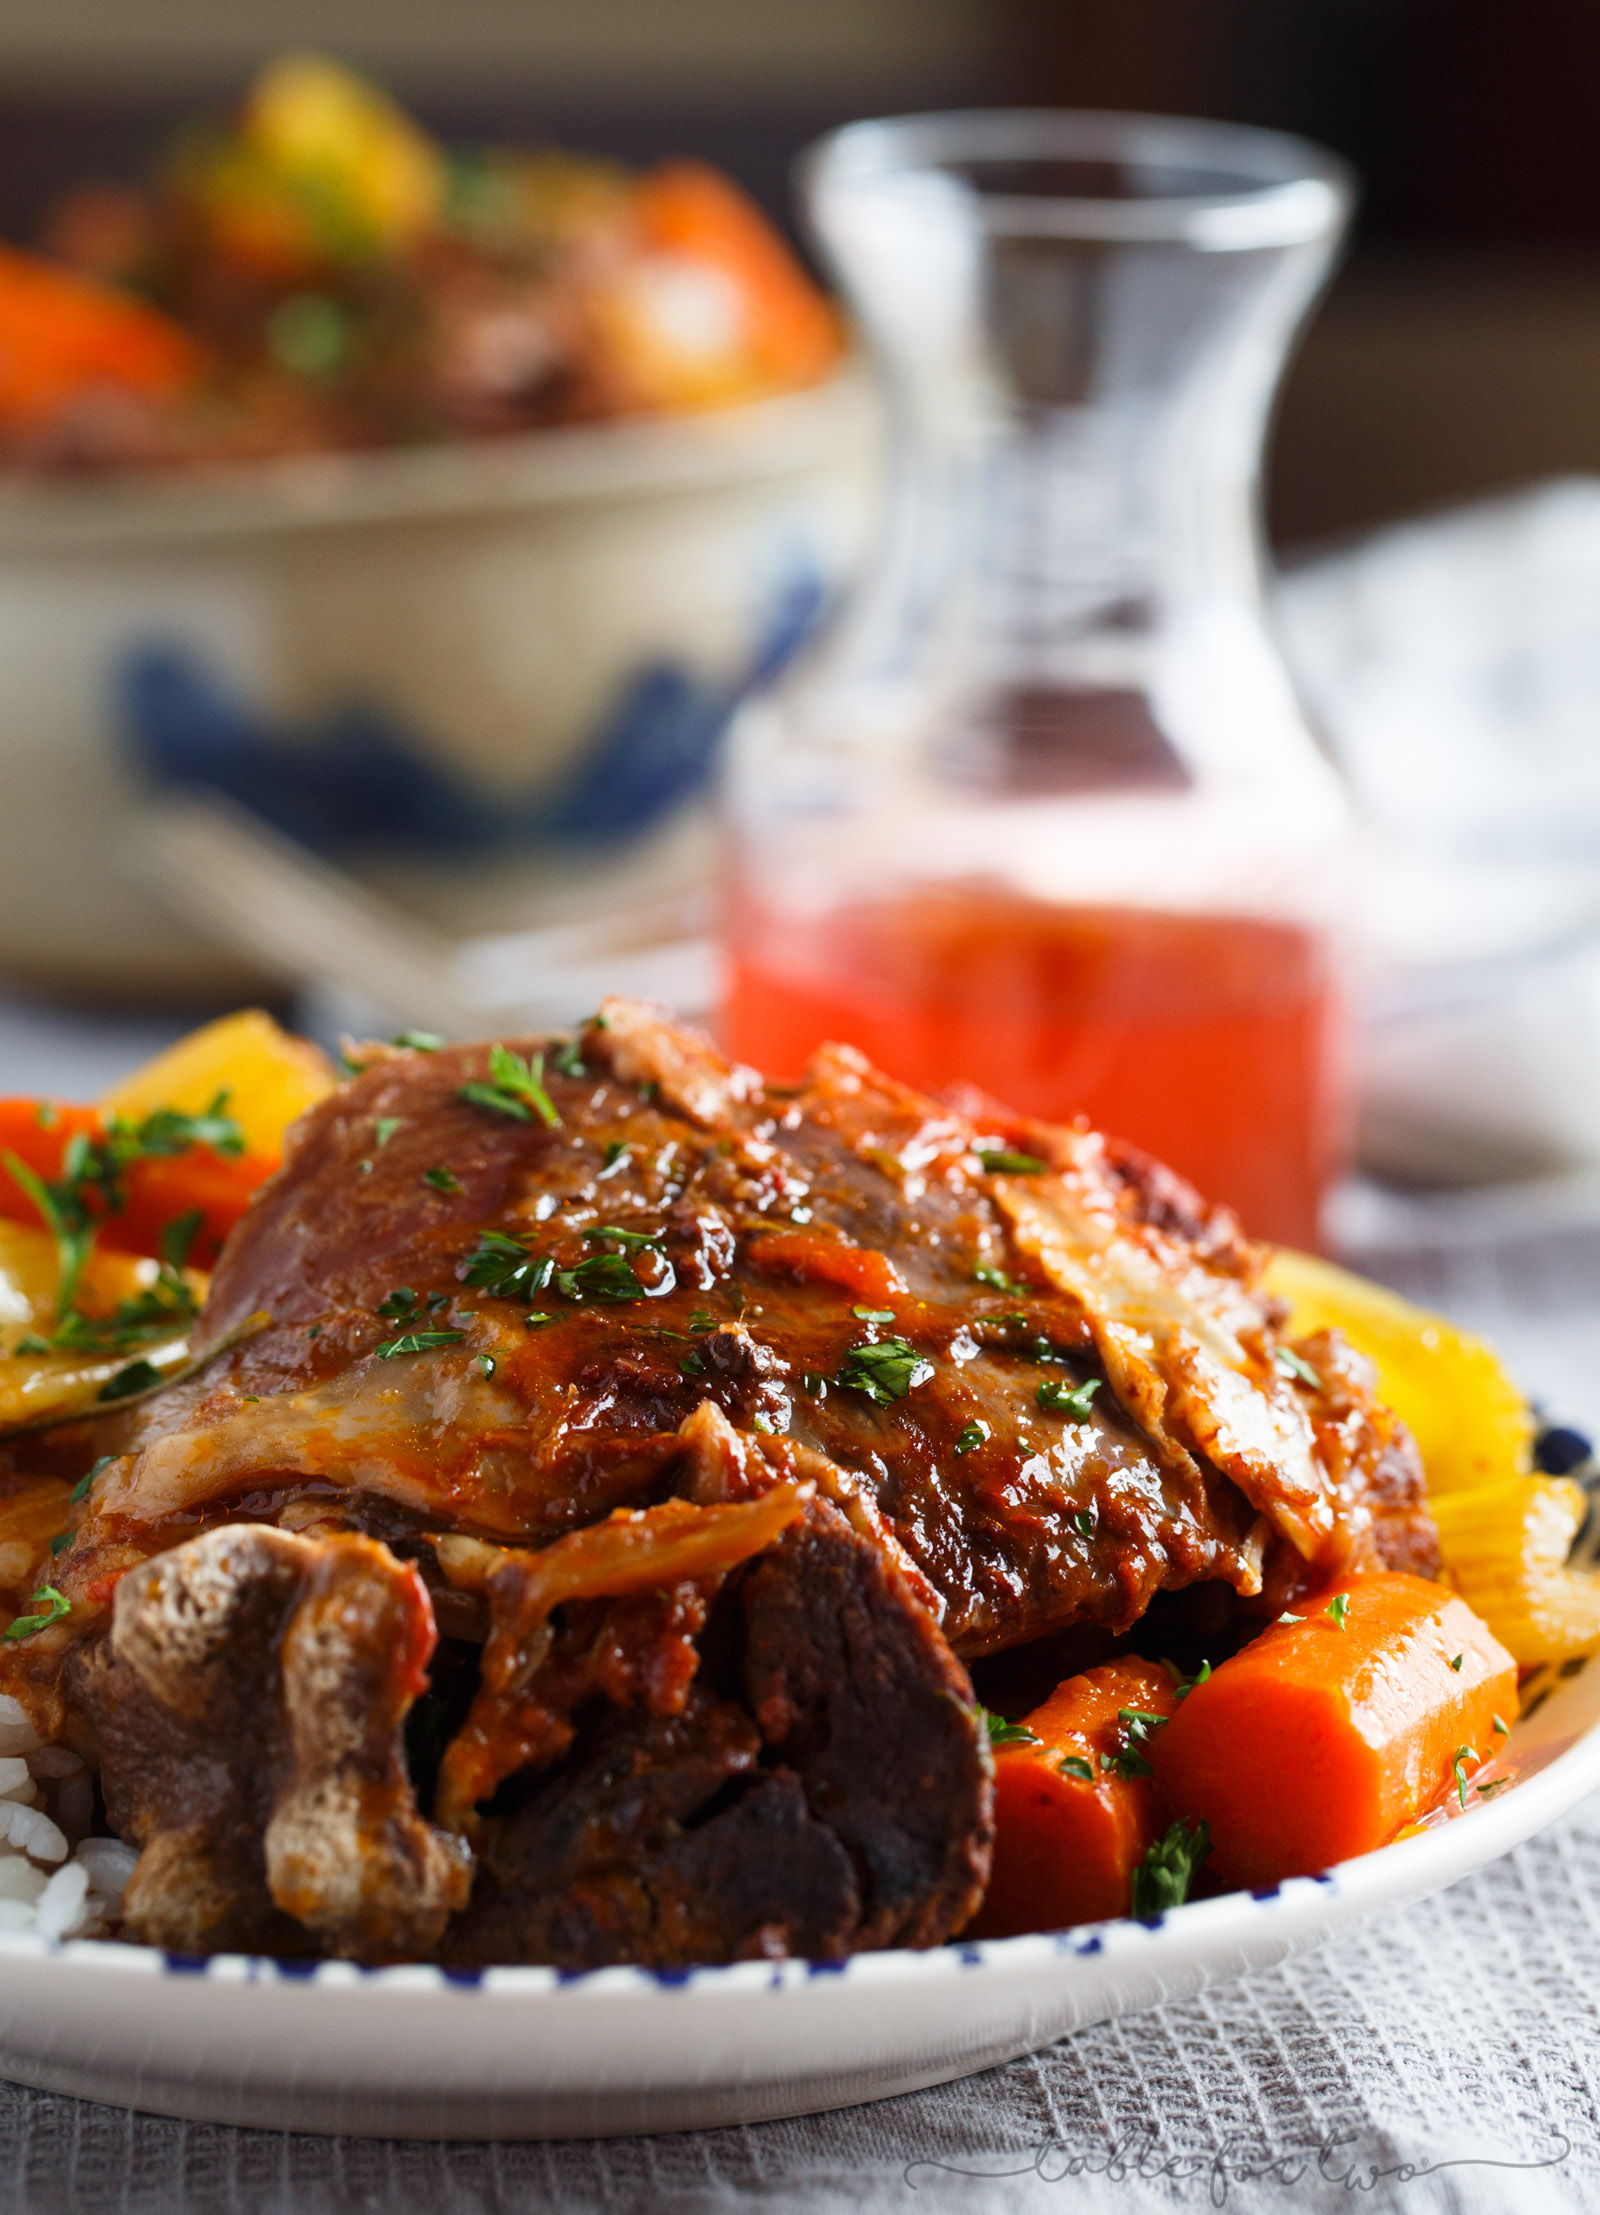 Slow cooker osso buco is unbelievably tender and full of flavor. There is nothing intimidating about making this restaurant favorite at home!